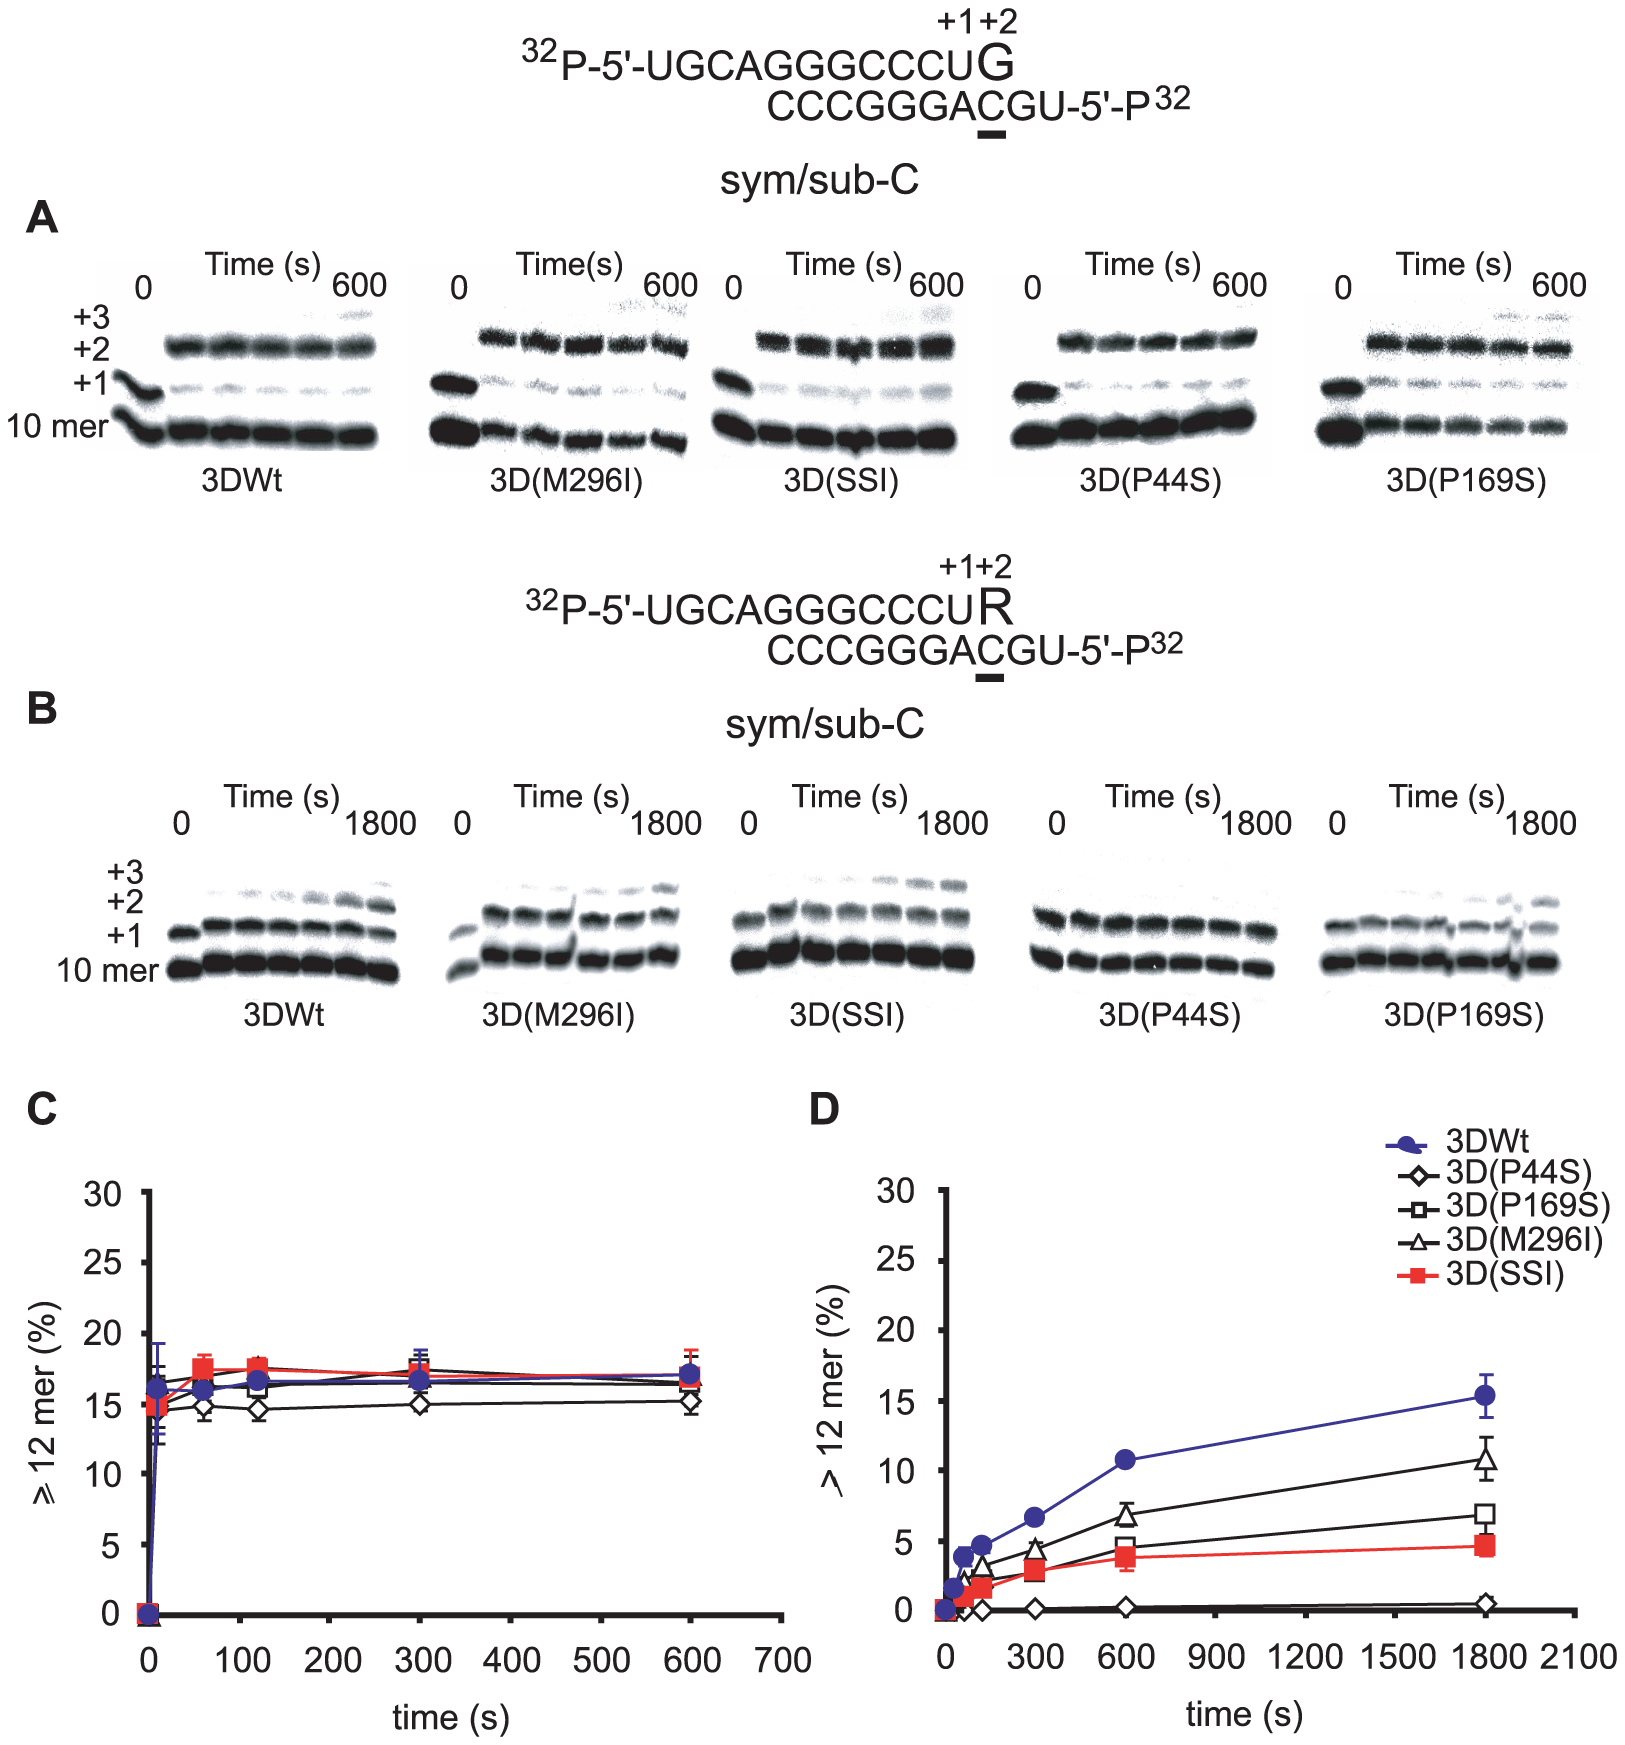 Incorporation of nucleotides into sym/sub-AC by mutant FMDV polymerases.